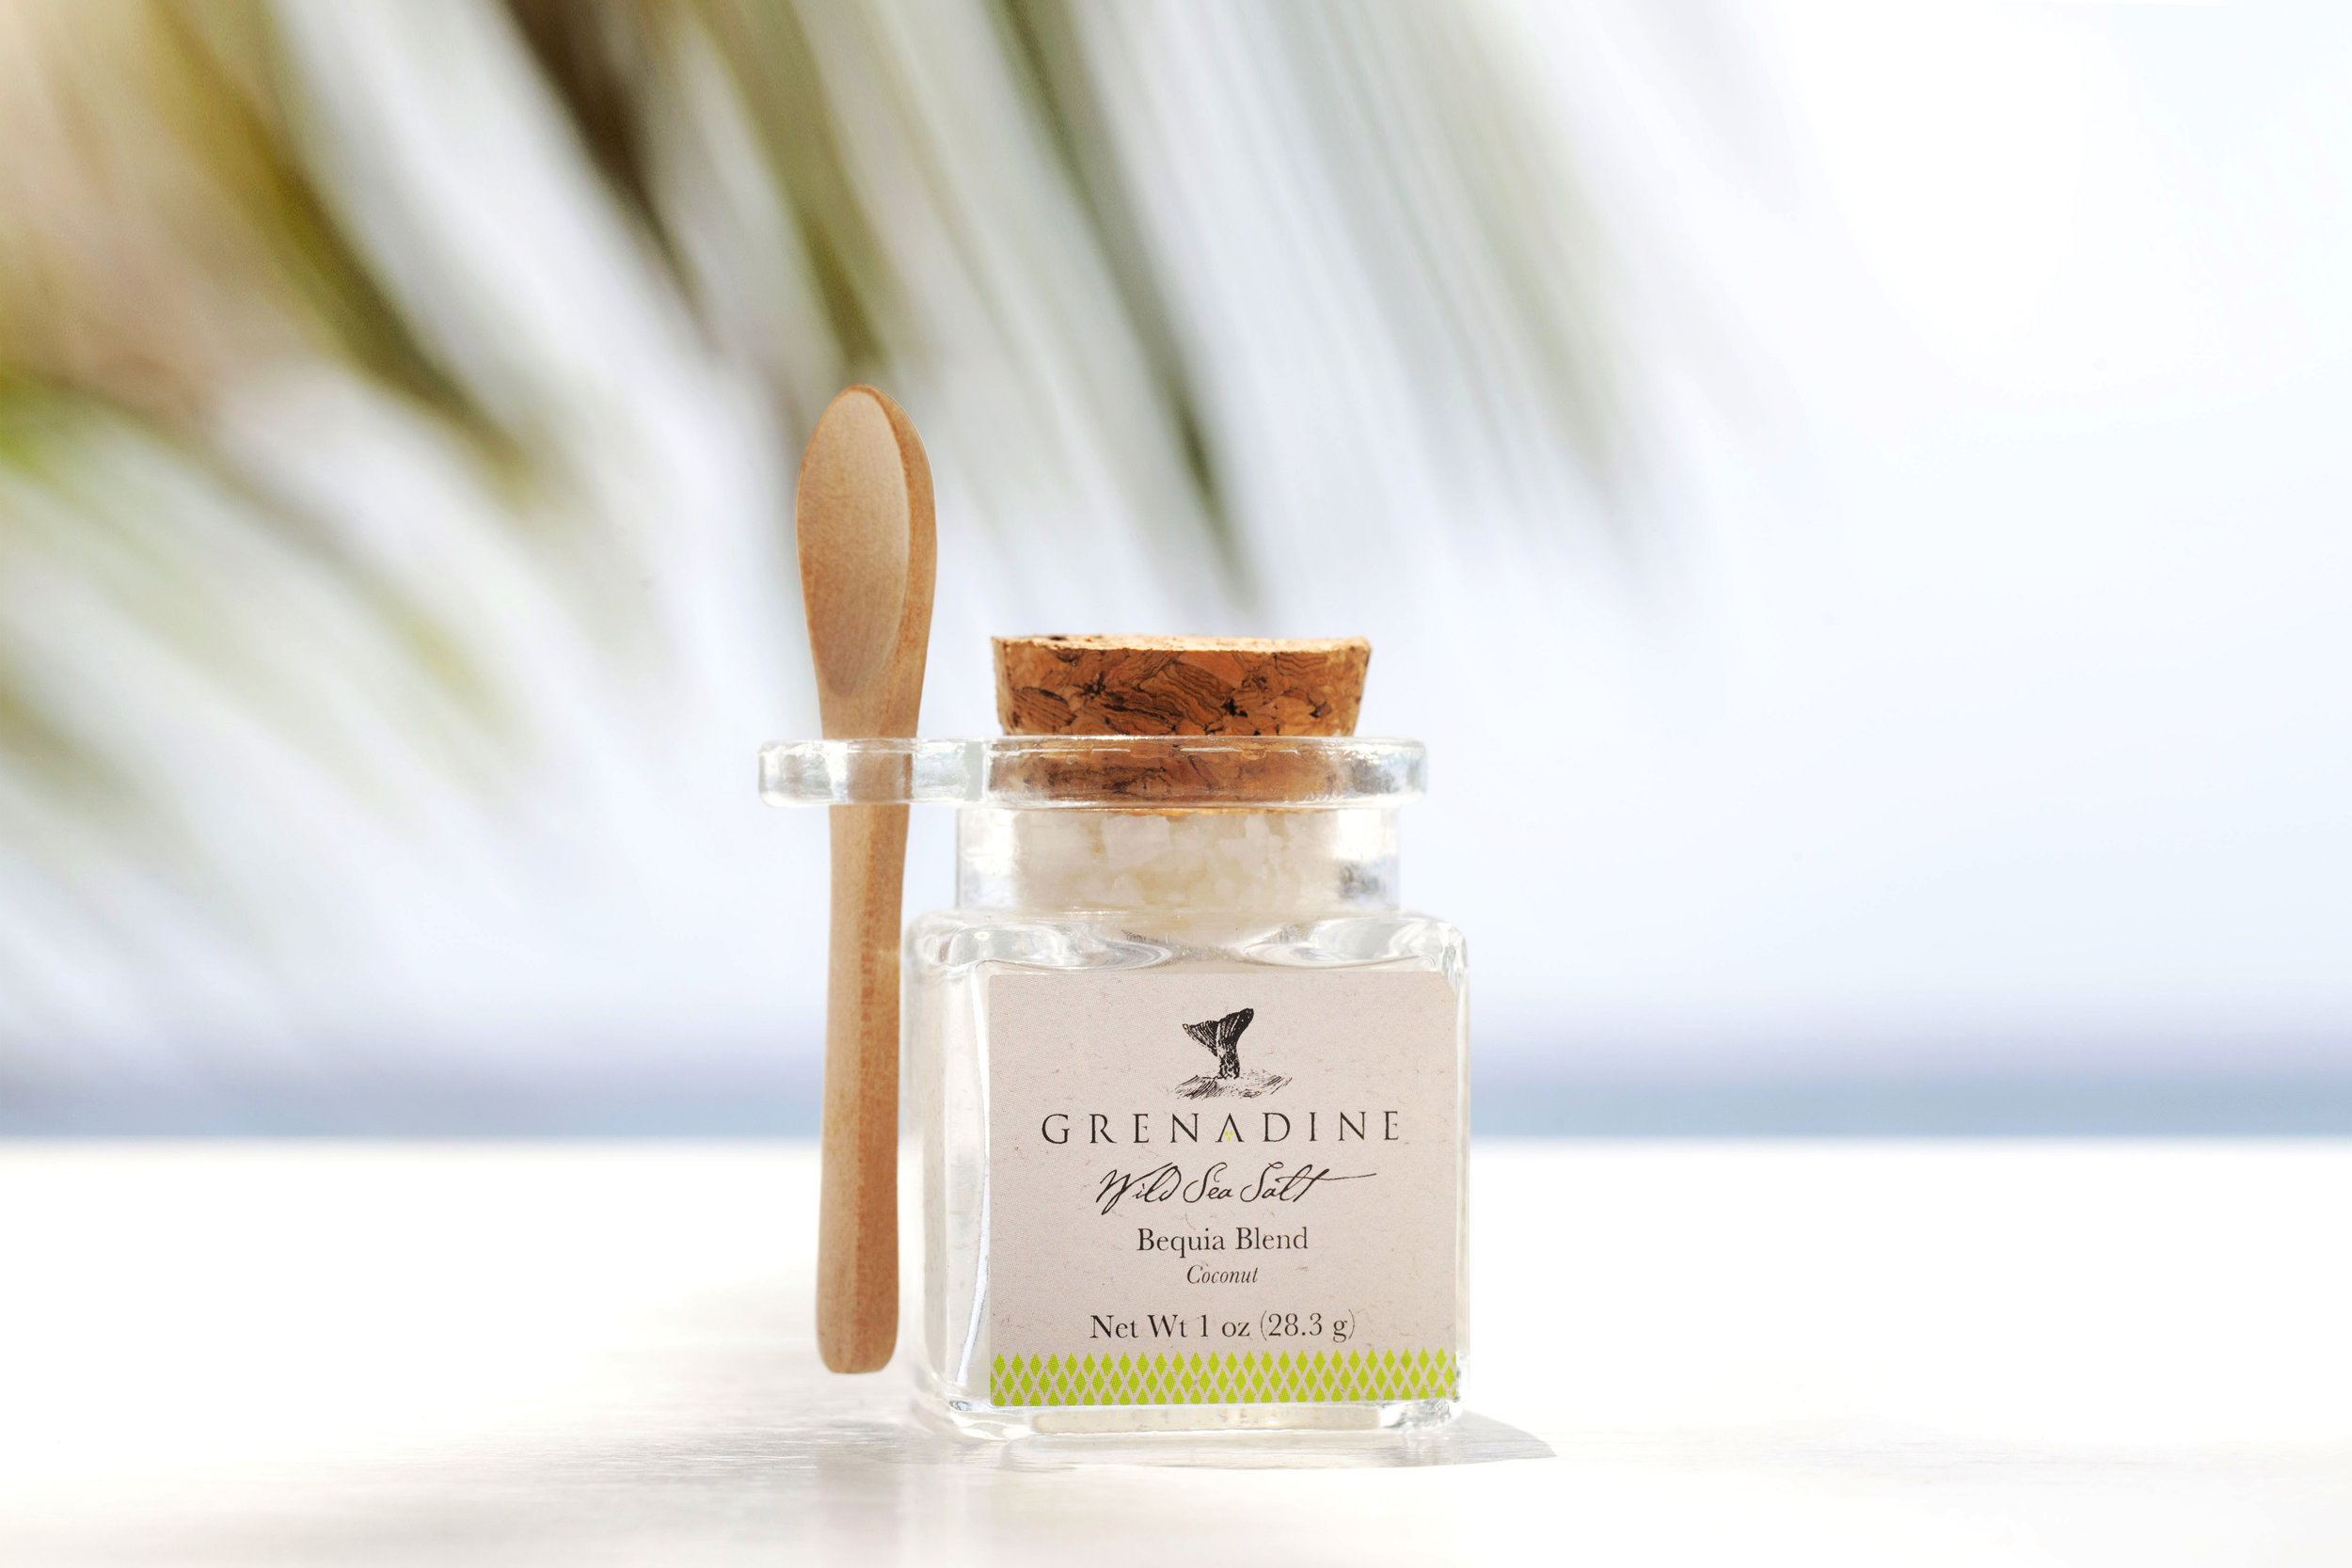 Bequia Blend - - Coconut -On our enchanted island of Bequia, drinking fresh coconut water is a daily ritual for many. From that inspiration, we combine the sweetness of coconut with the savory salty flavor for a mouth watering, deliciously healthful accent to any recipe.SIZES1 oz | 2.5 oz | 5.5 oz